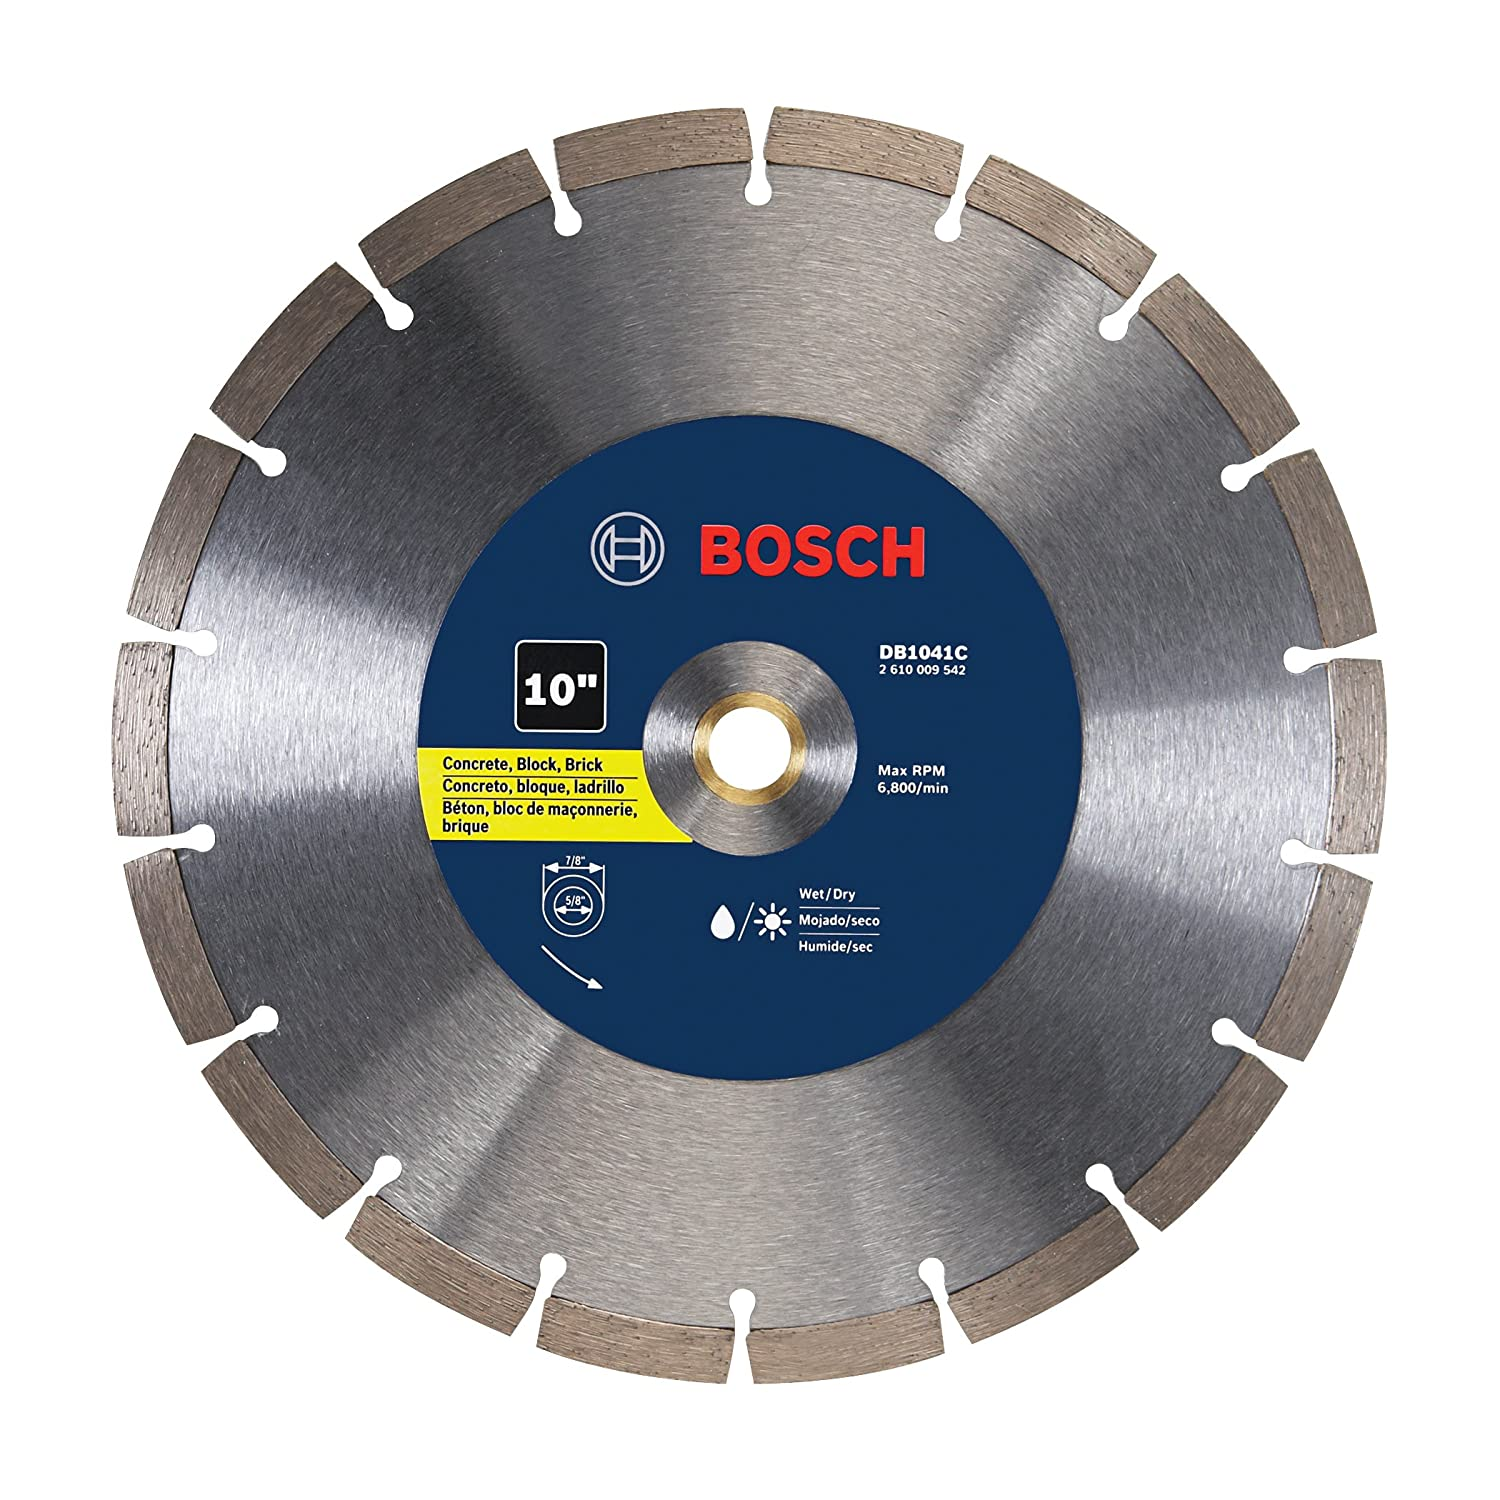 Bosch db1041c premium segmented diamond circular saw blade 10 inch bosch db1041c premium segmented diamond circular saw blade 10 inch amazon greentooth Images